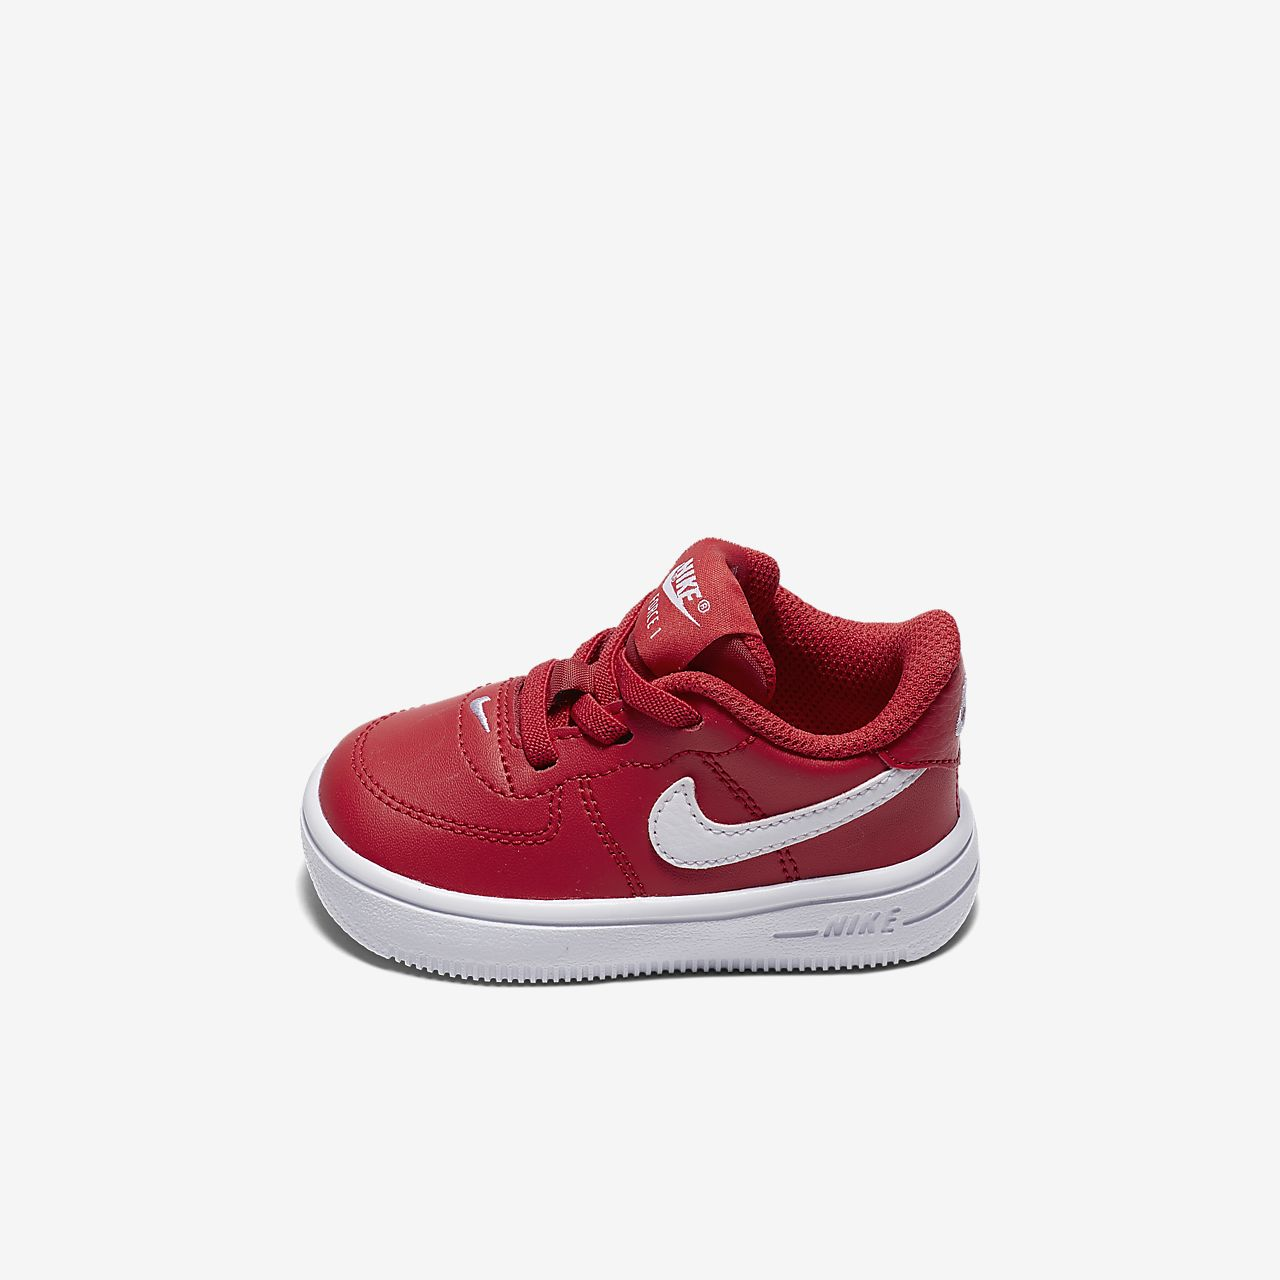 nike air force 1 mini swoosh red white and blue nz